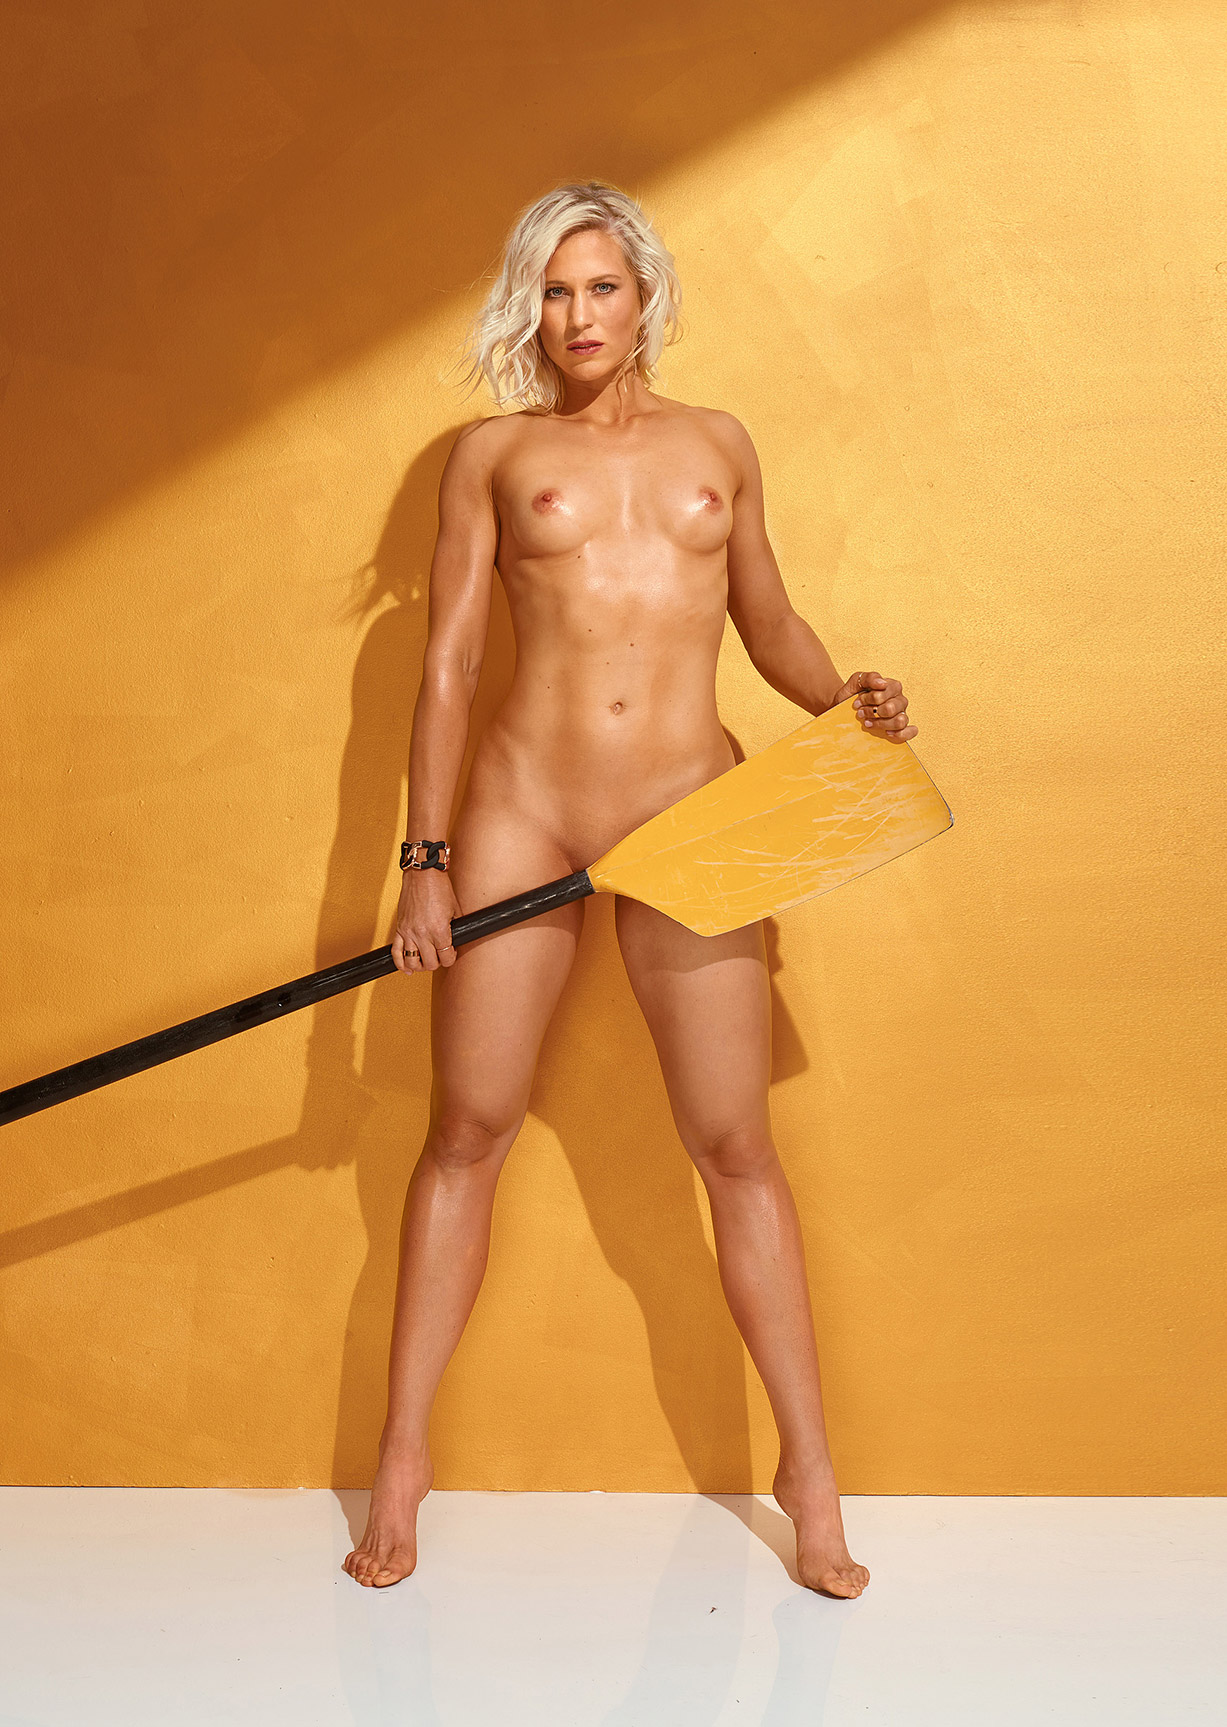 German-Nude-Olympic-Stars-for-Playboy-6.jpg